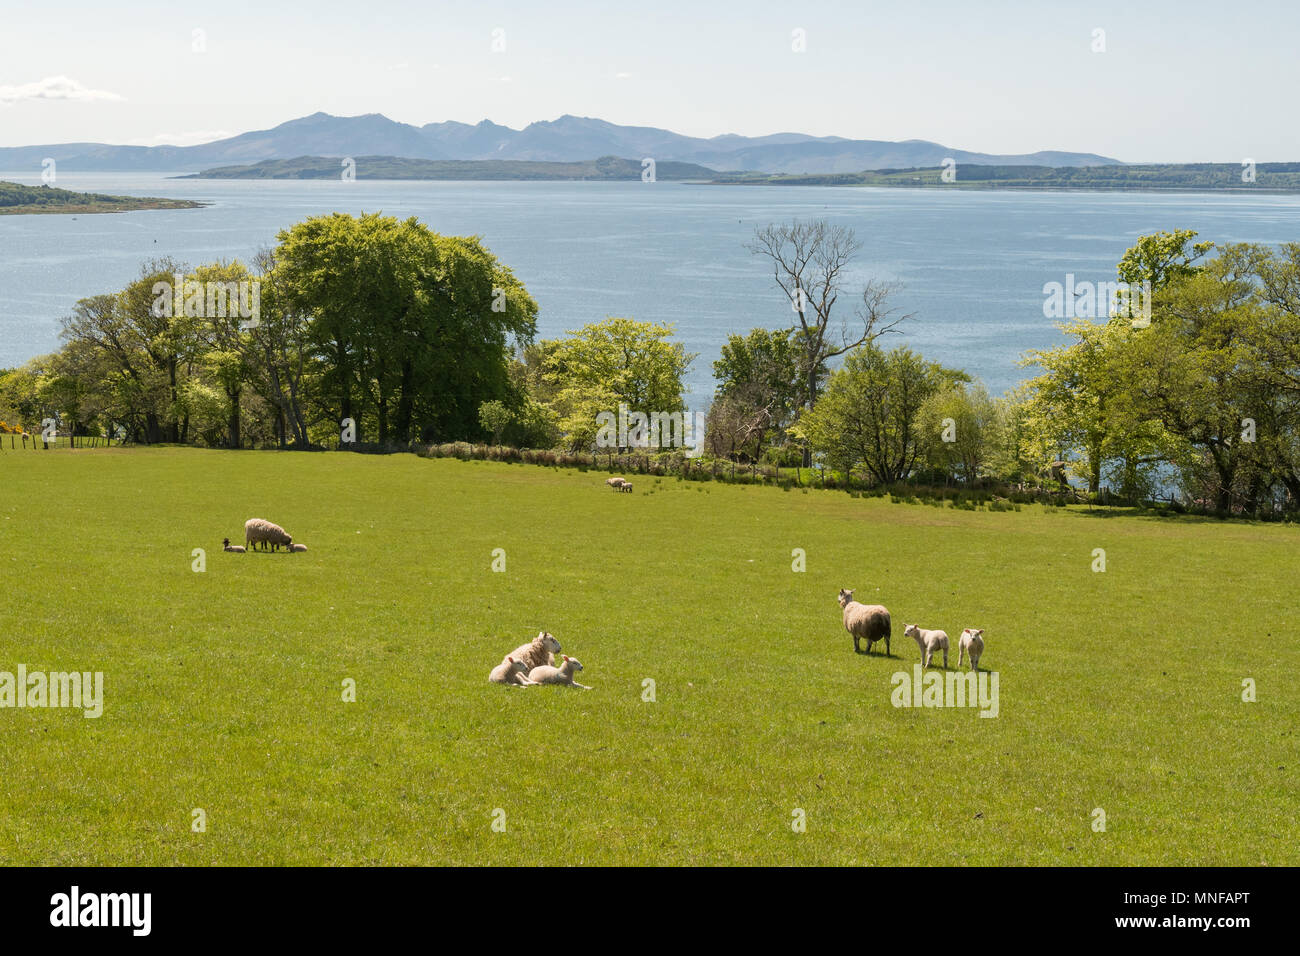 view of the Isle of Arran across the Firth of Clyde from Largs in spring, Scotland, UK - Stock Image